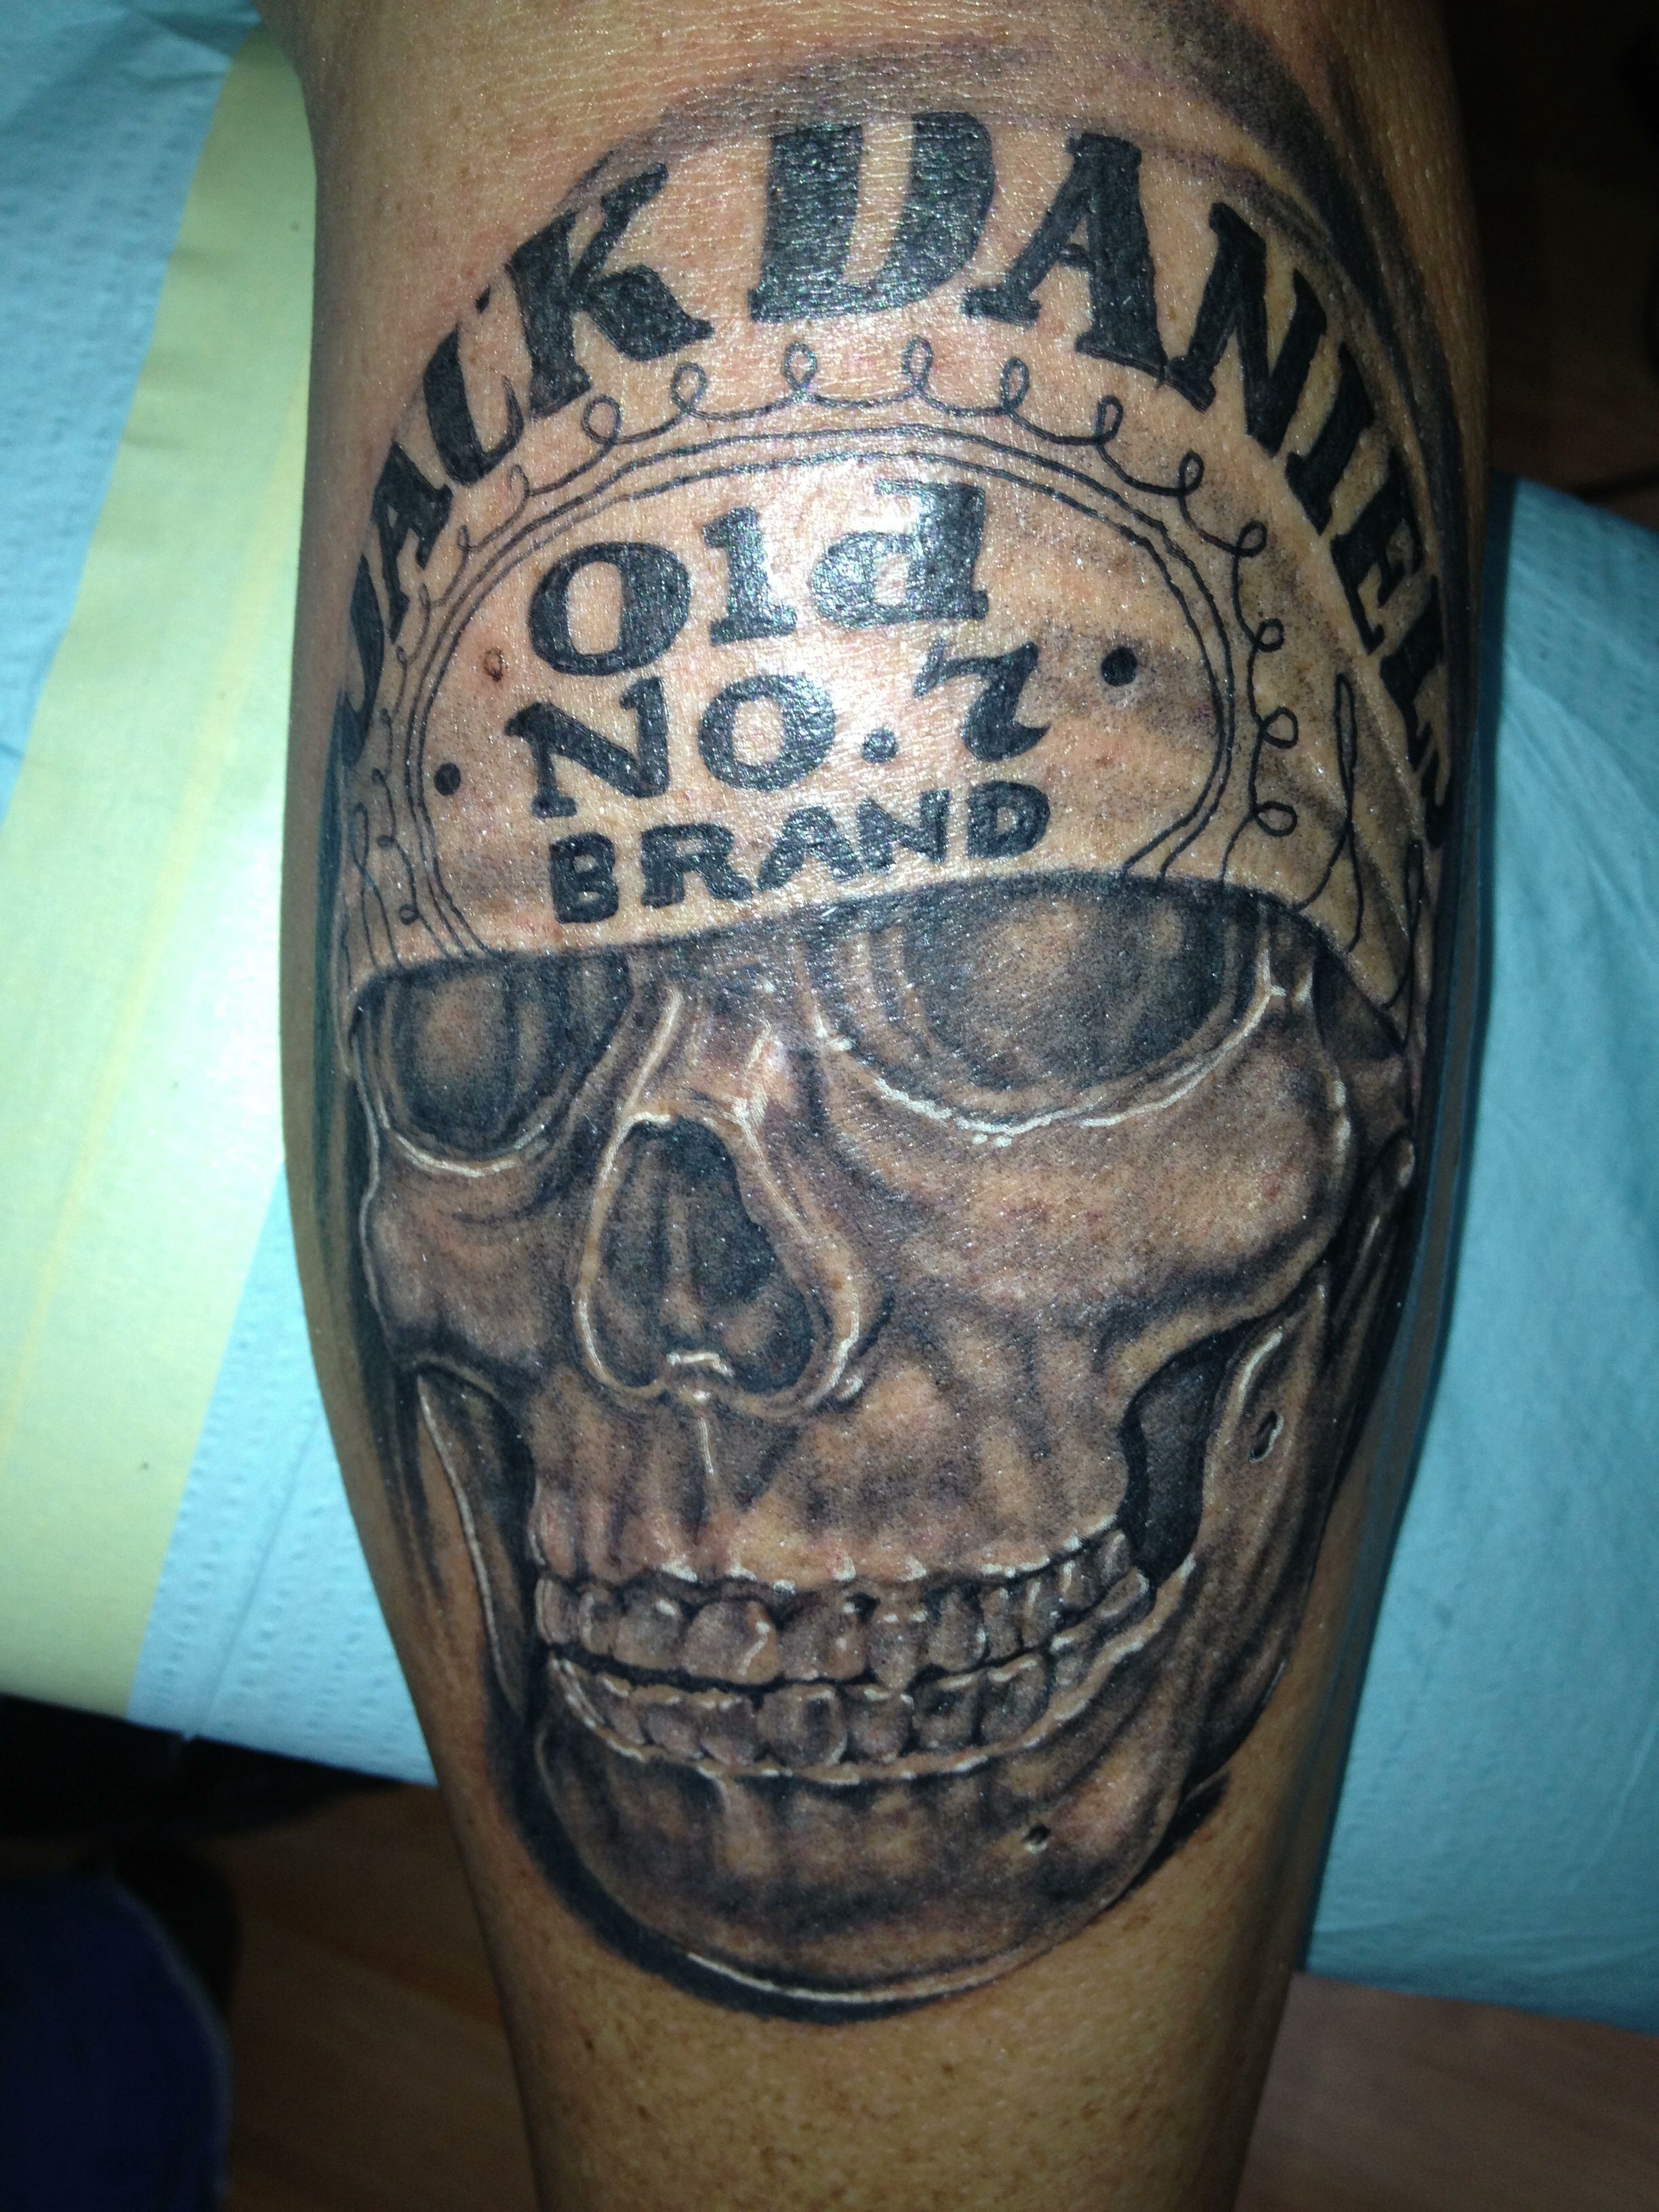 Route 66 tattoo picture at checkoutmyink com - Jack Daniels Skull